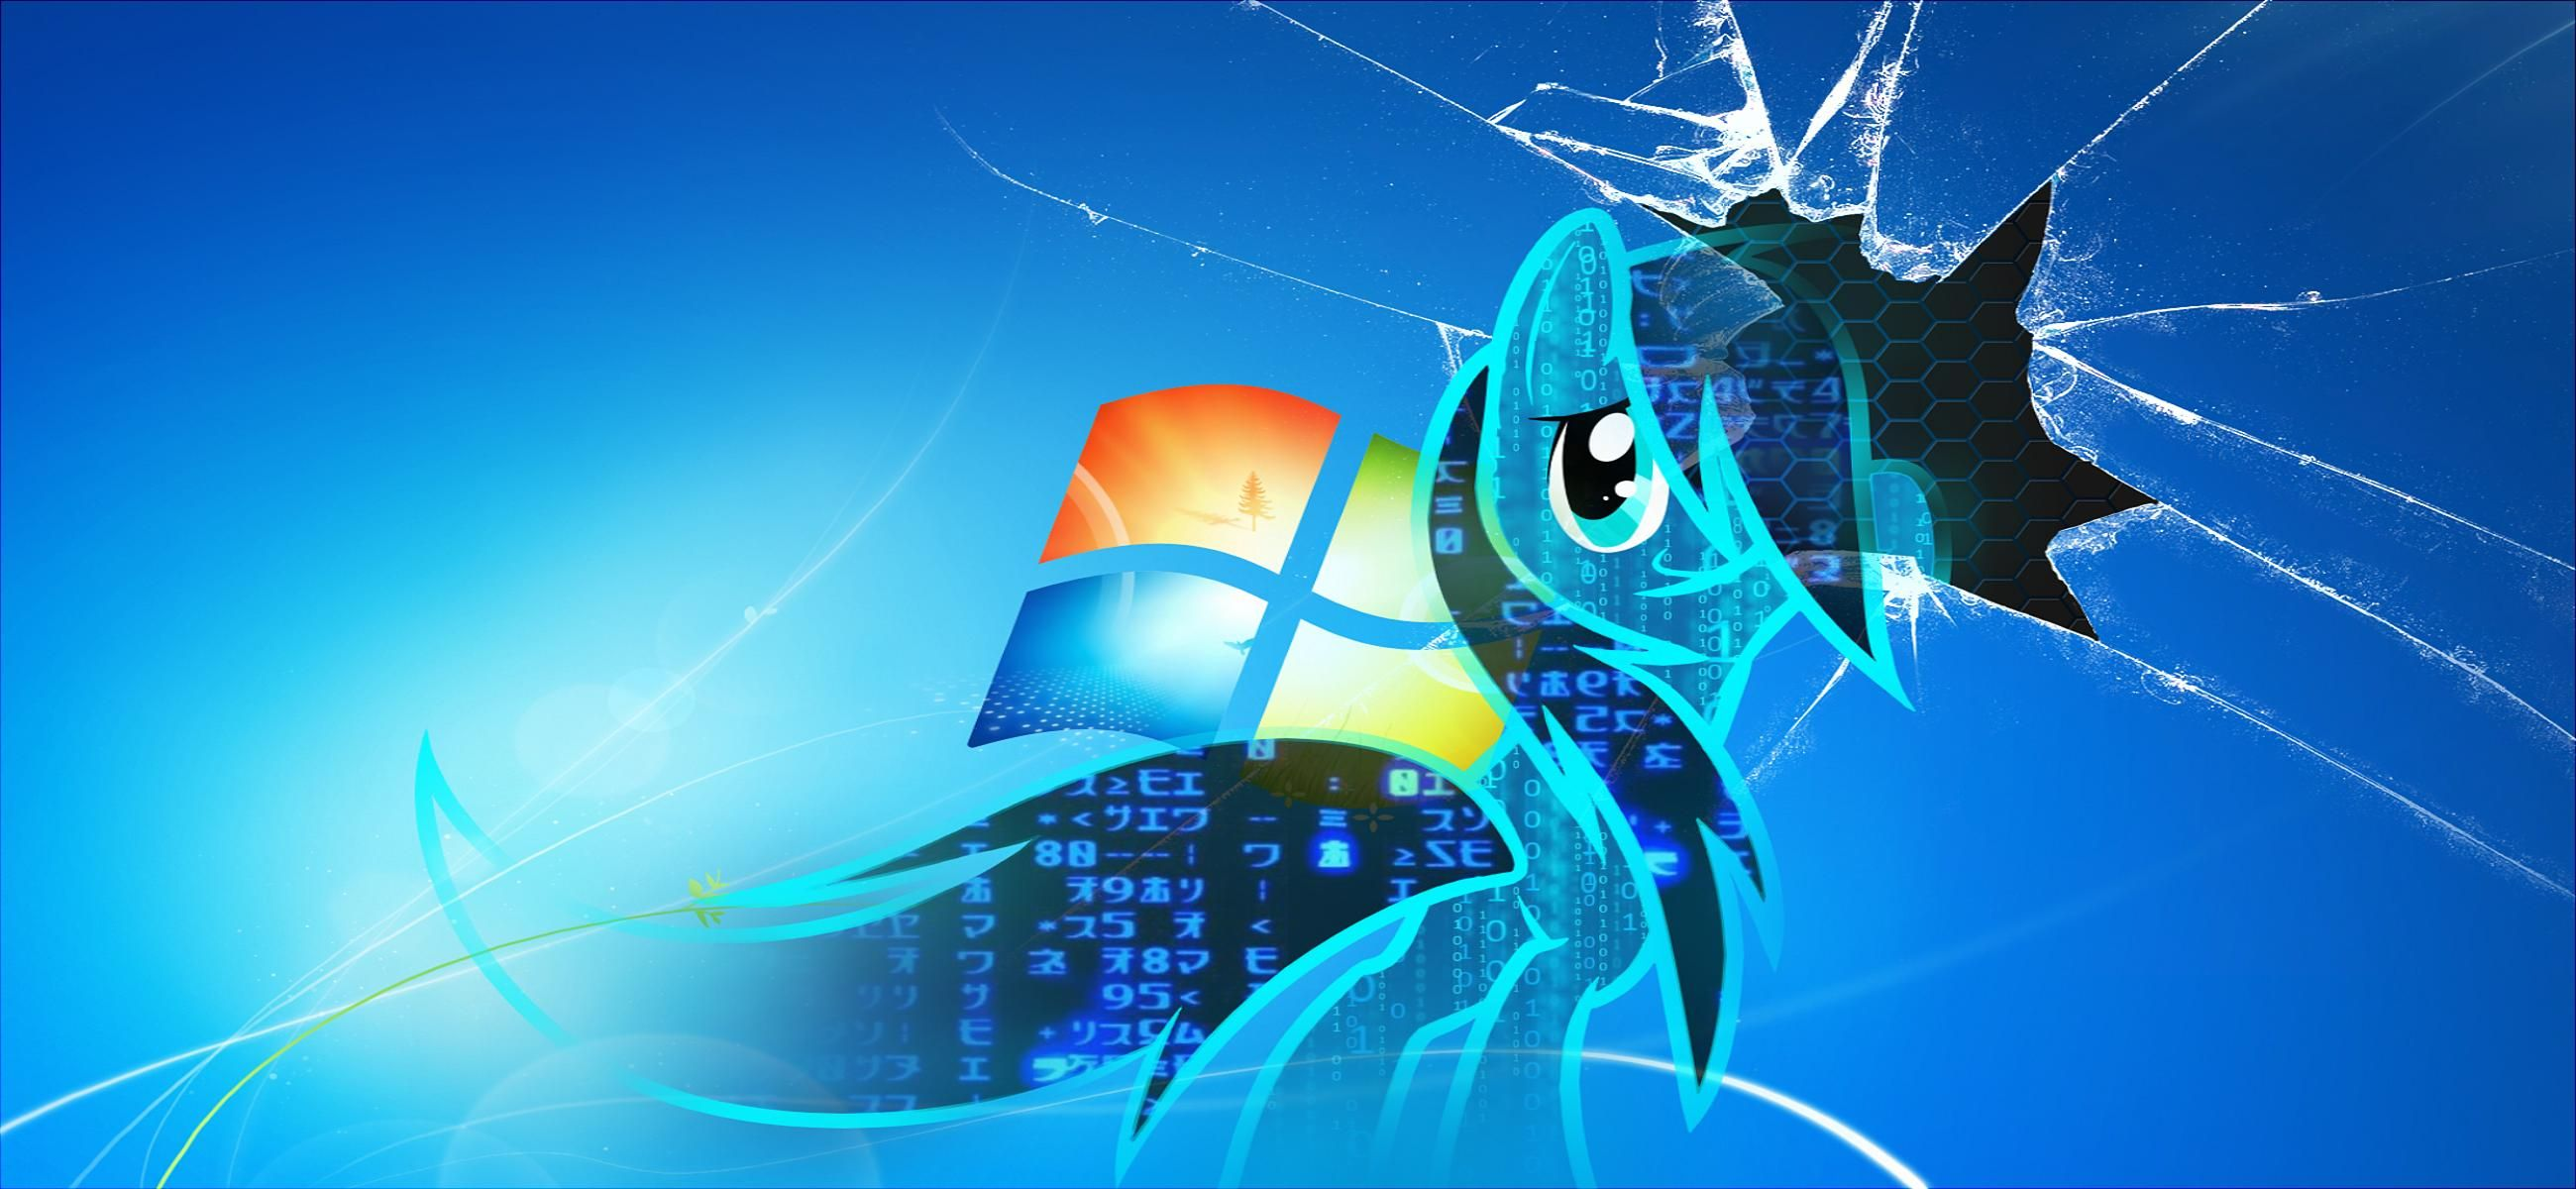 Broken Screen Wallpaper Windows 7 Best Wallpaper Hd Robot Wallpaper Background Hd Wallpaper Anime Wallpaper Iphone